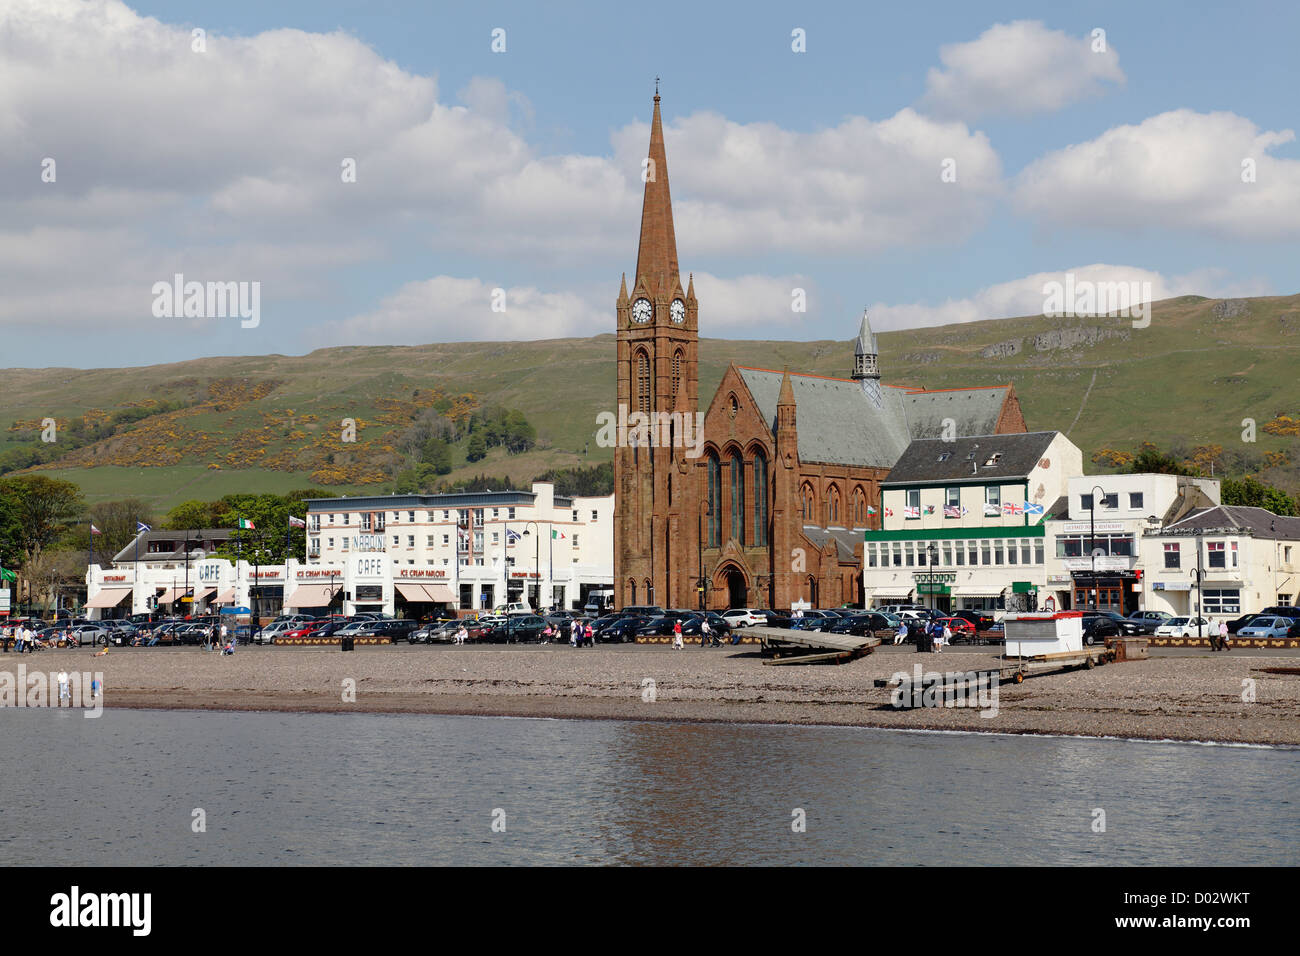 View looking towards the seafront and beach in the seaside town of Largs in North Ayrshire, Scotland, UK - Stock Image